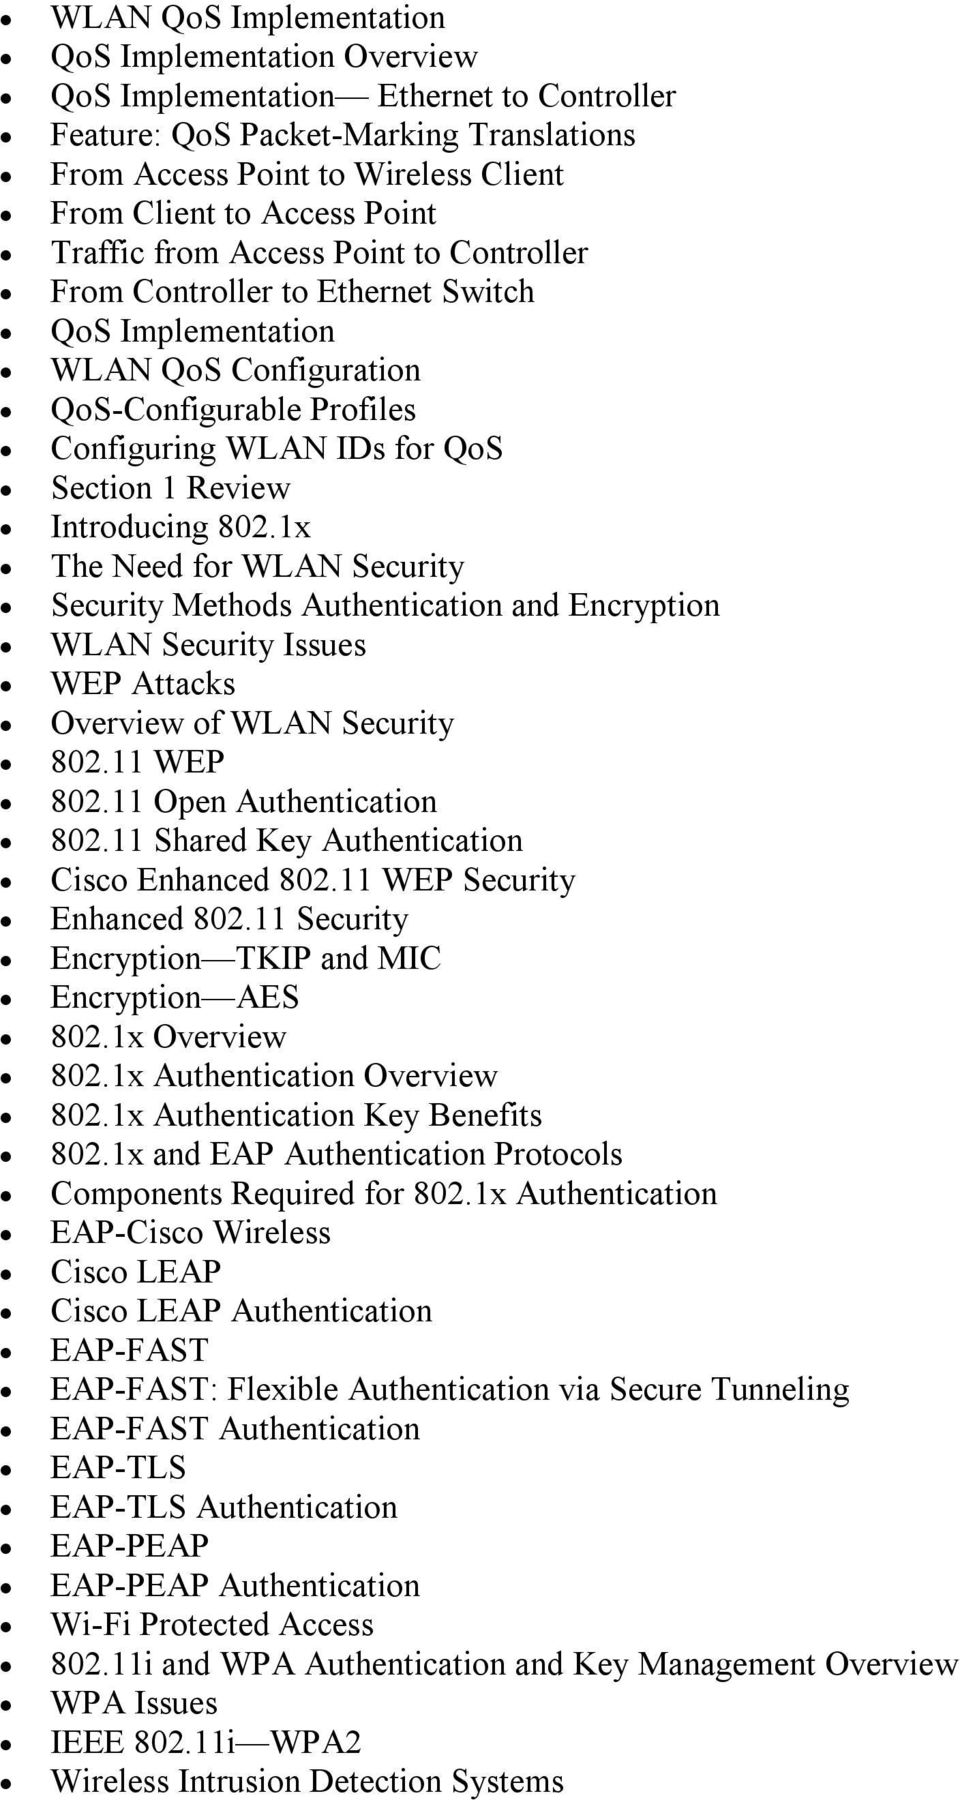 Introducing 802.1x The Need for WLAN Security Security Methods Authentication and Encryption WLAN Security Issues WEP Attacks Overview of WLAN Security 802.11 WEP 802.11 Open Authentication 802.